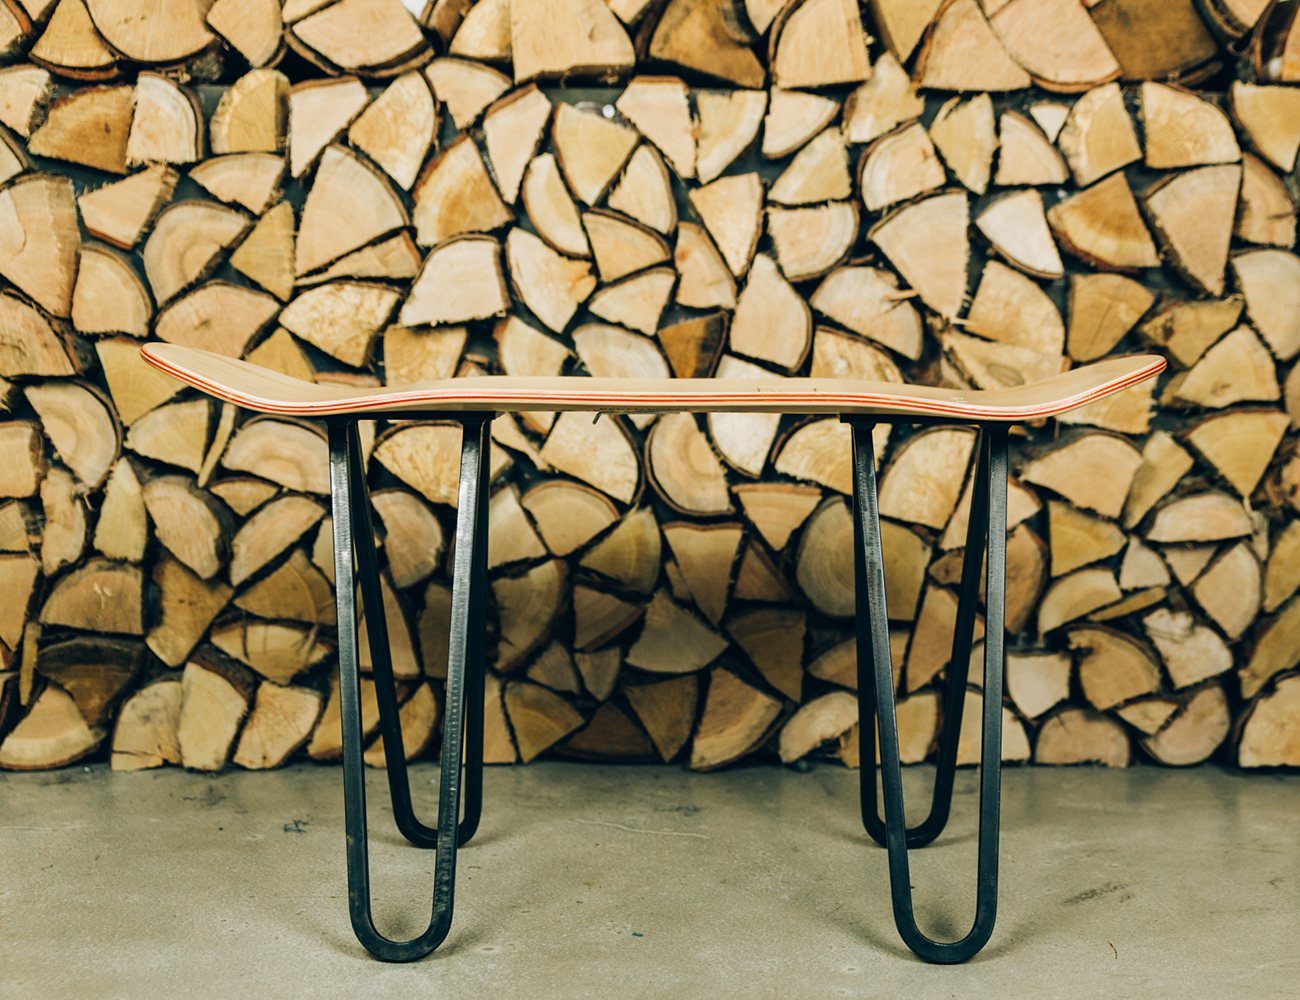 Baked / Roast – The Wood One & The Steel one